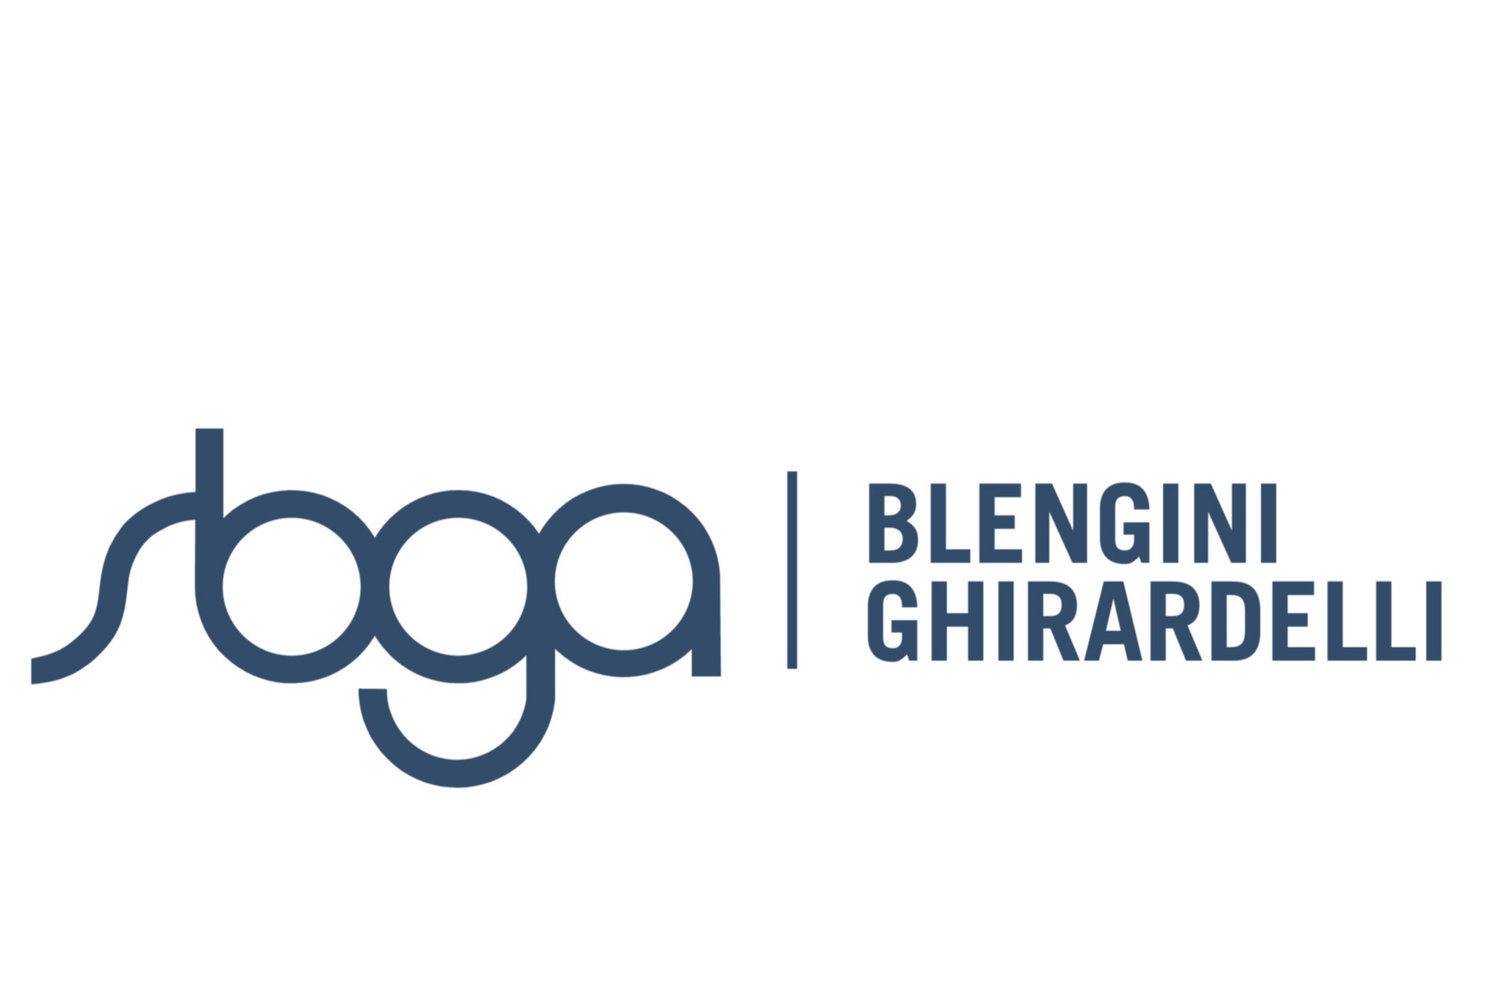 SBGA - Blengini Ghirardelli Associati